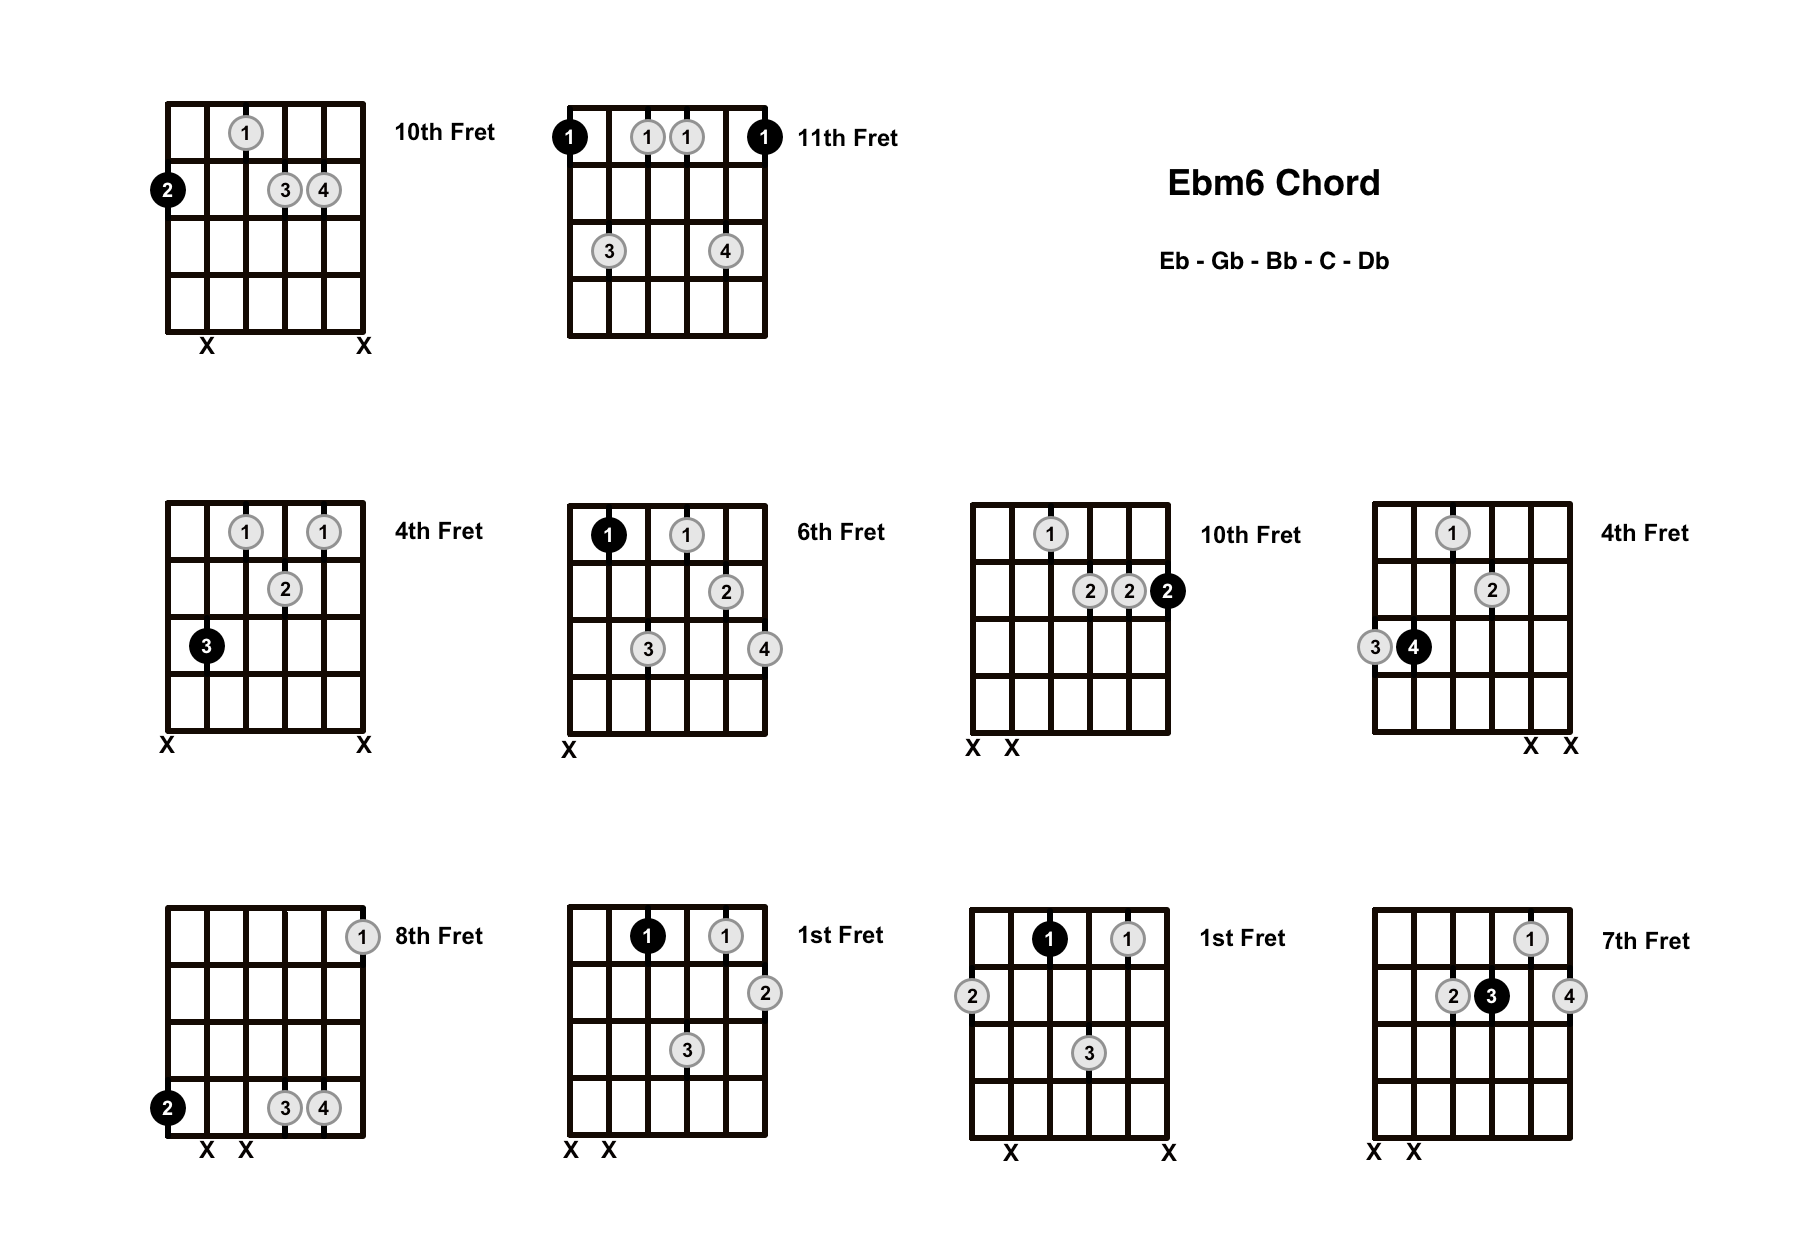 Ebm6 Chord On The Guitar (E Flat minor 6) – Diagrams, Finger Positions and Theory